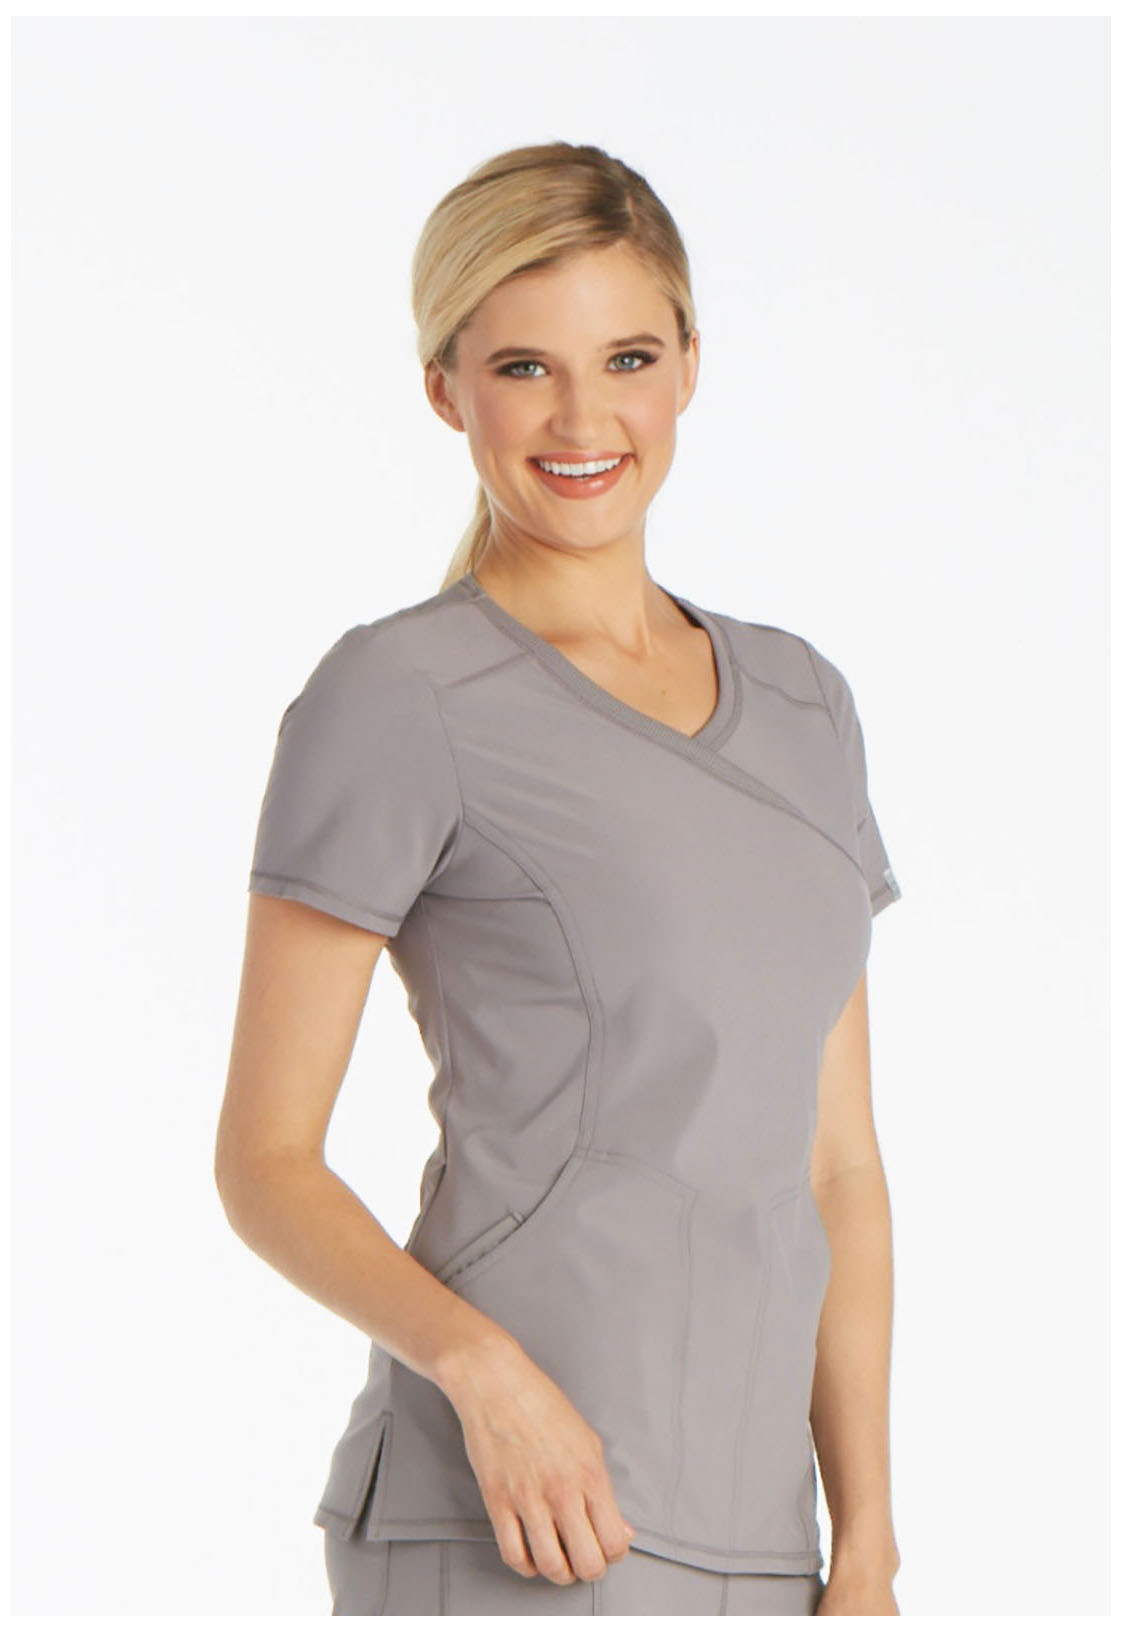 c4787a764a6 Infinity Mock Wrap Top in Stone 2625A-STPS from James Medical Uniforms